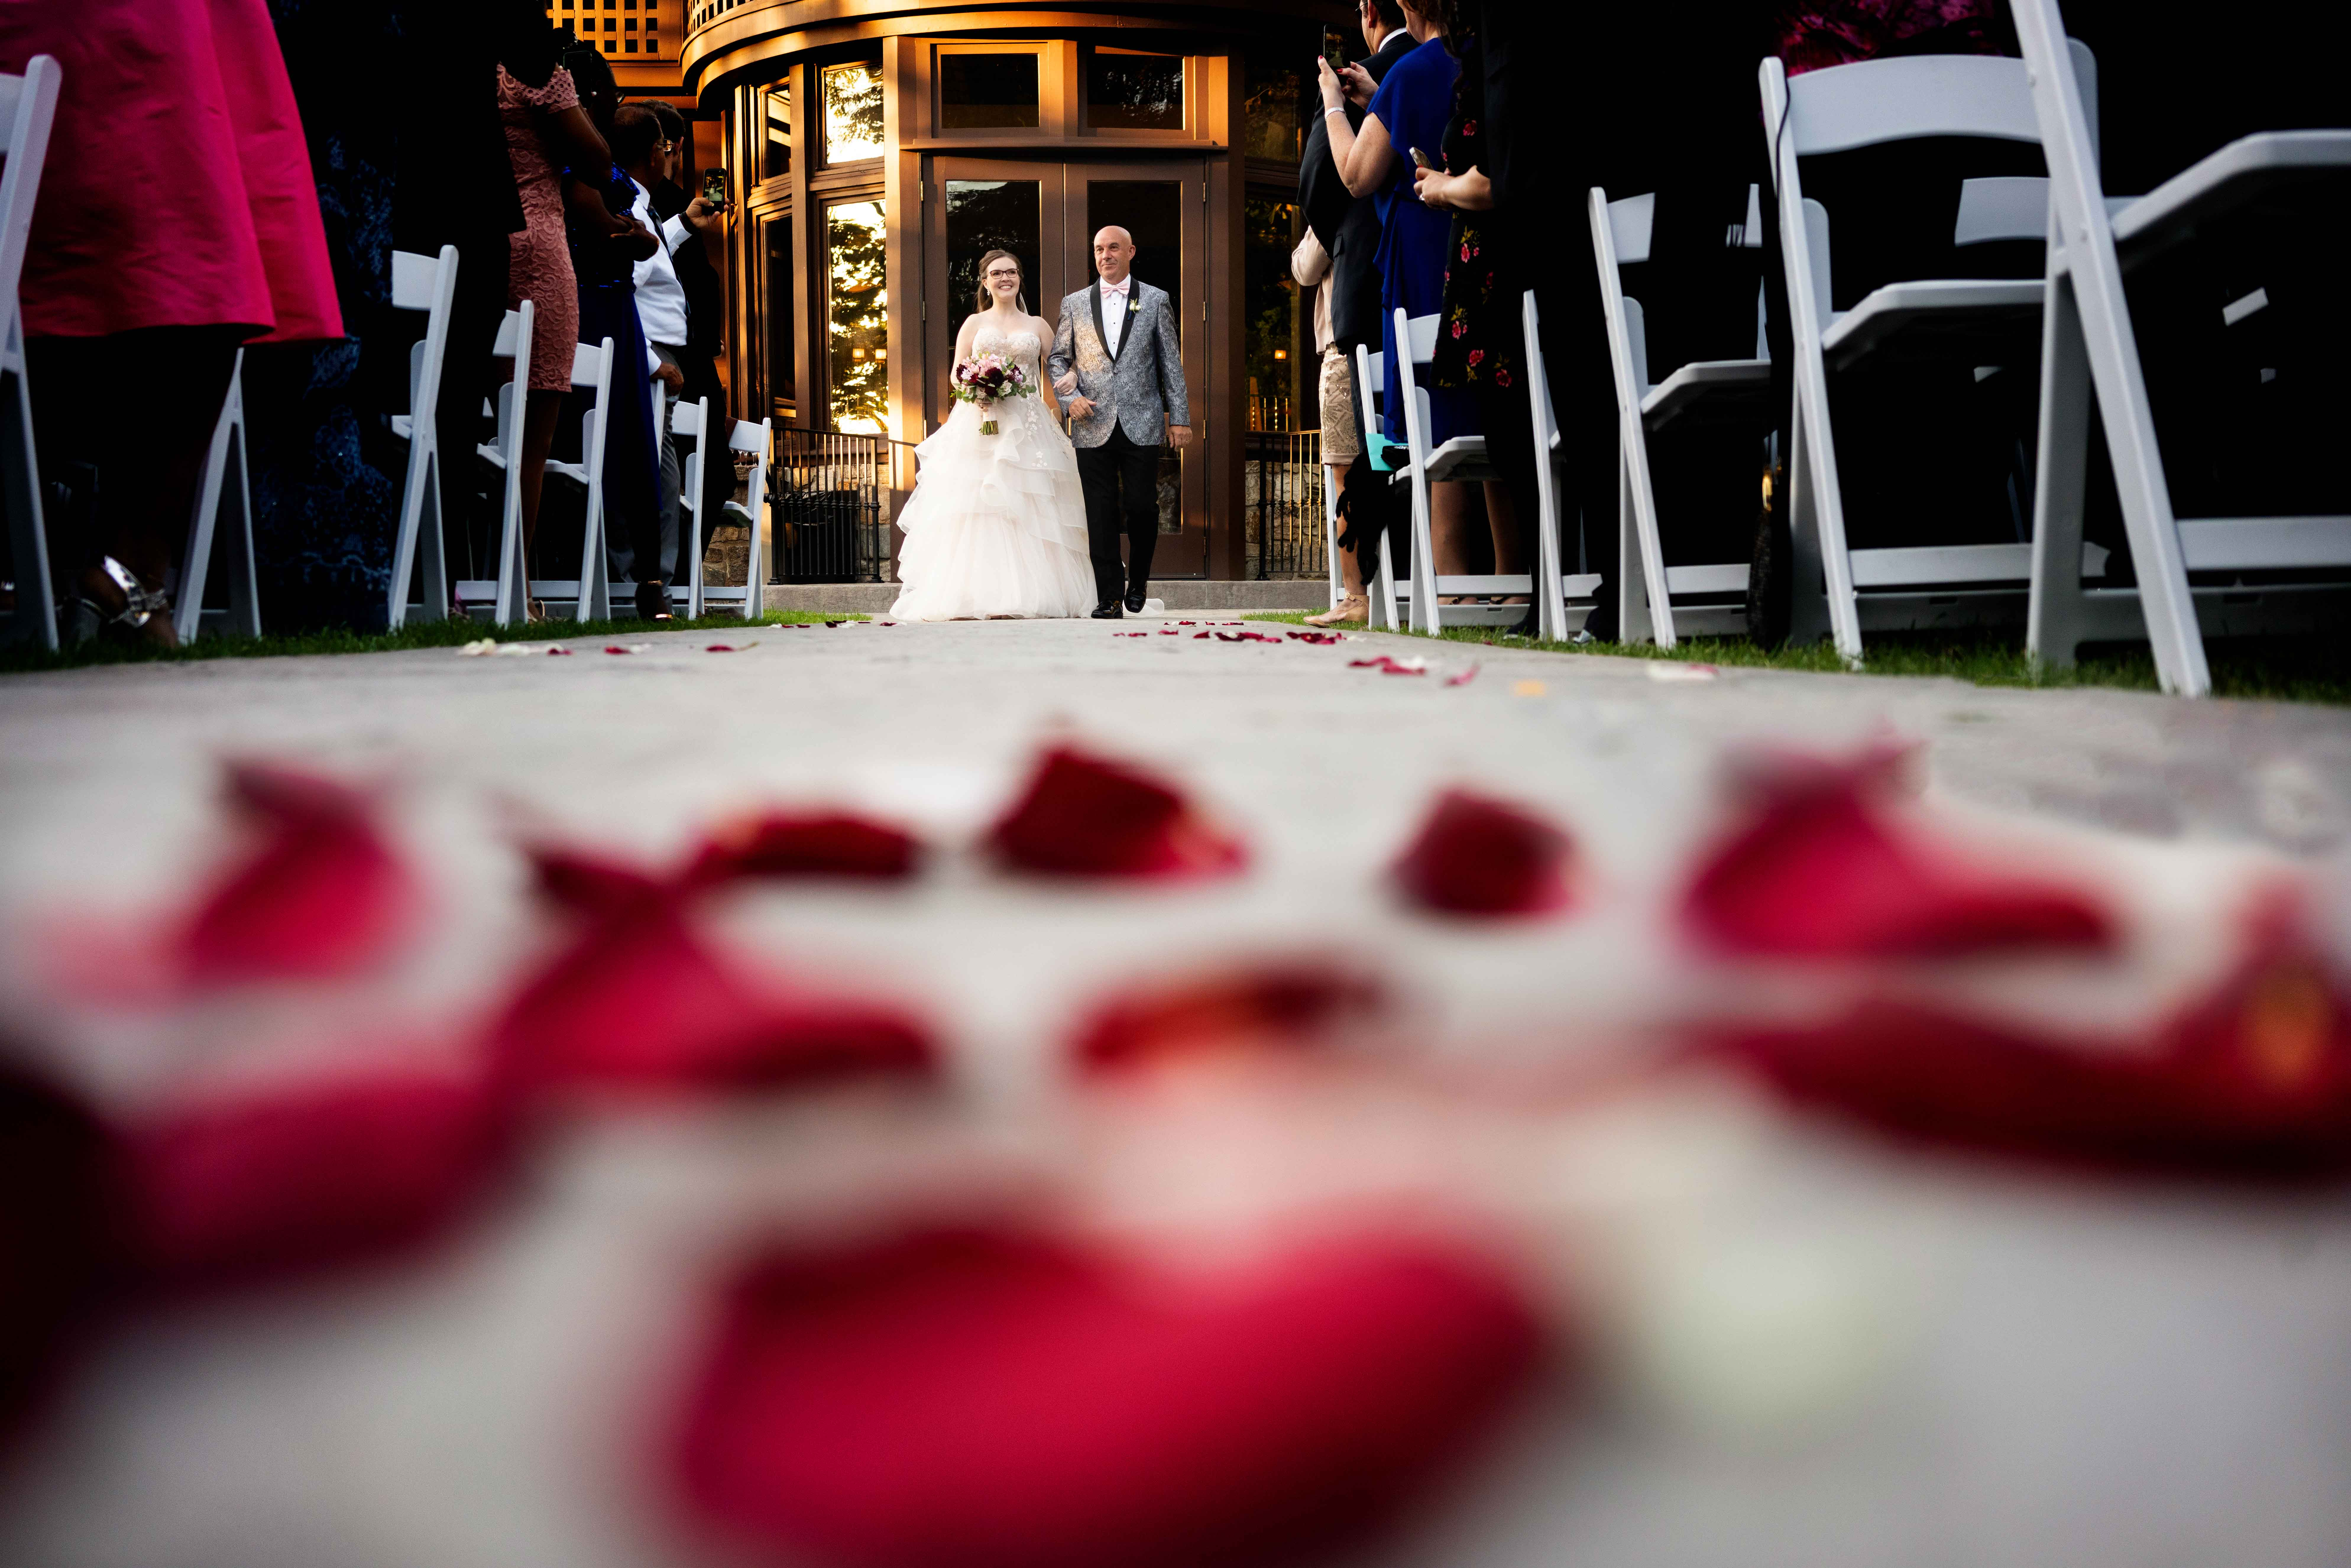 creative-angle-on-bride-walking-down-aisle-with-father-md-photo-films